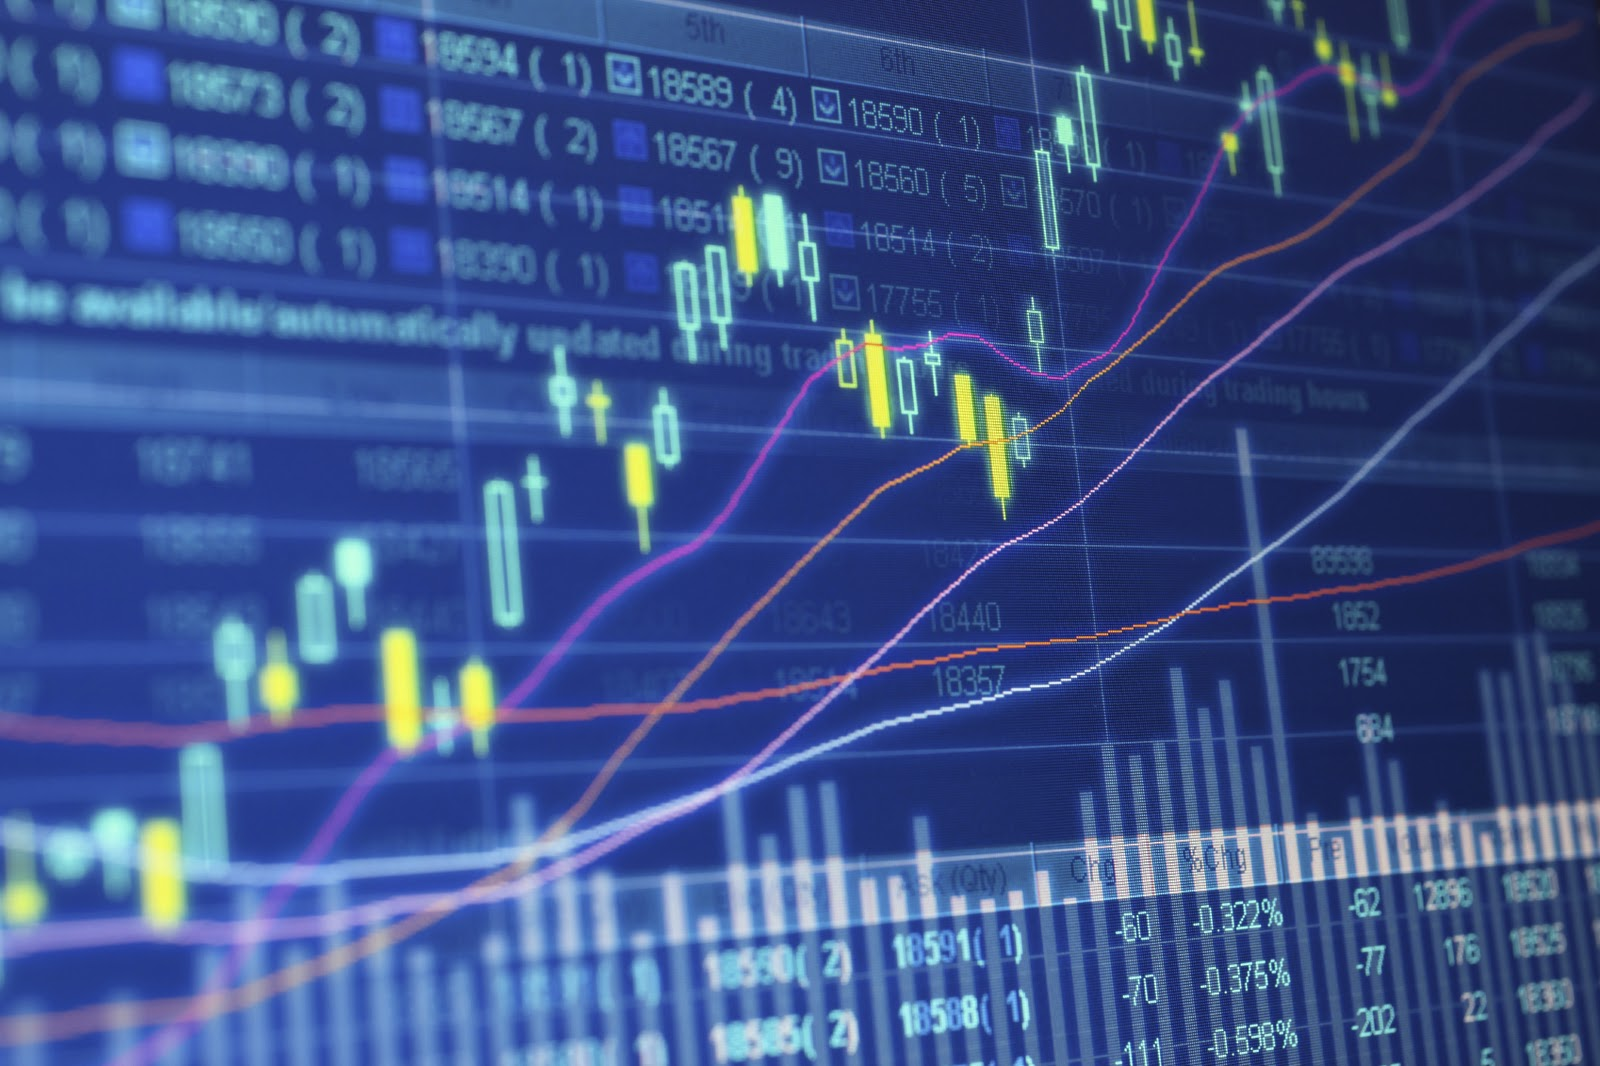 5 Amazing Advantages Forex Trading Offers That Others Don't